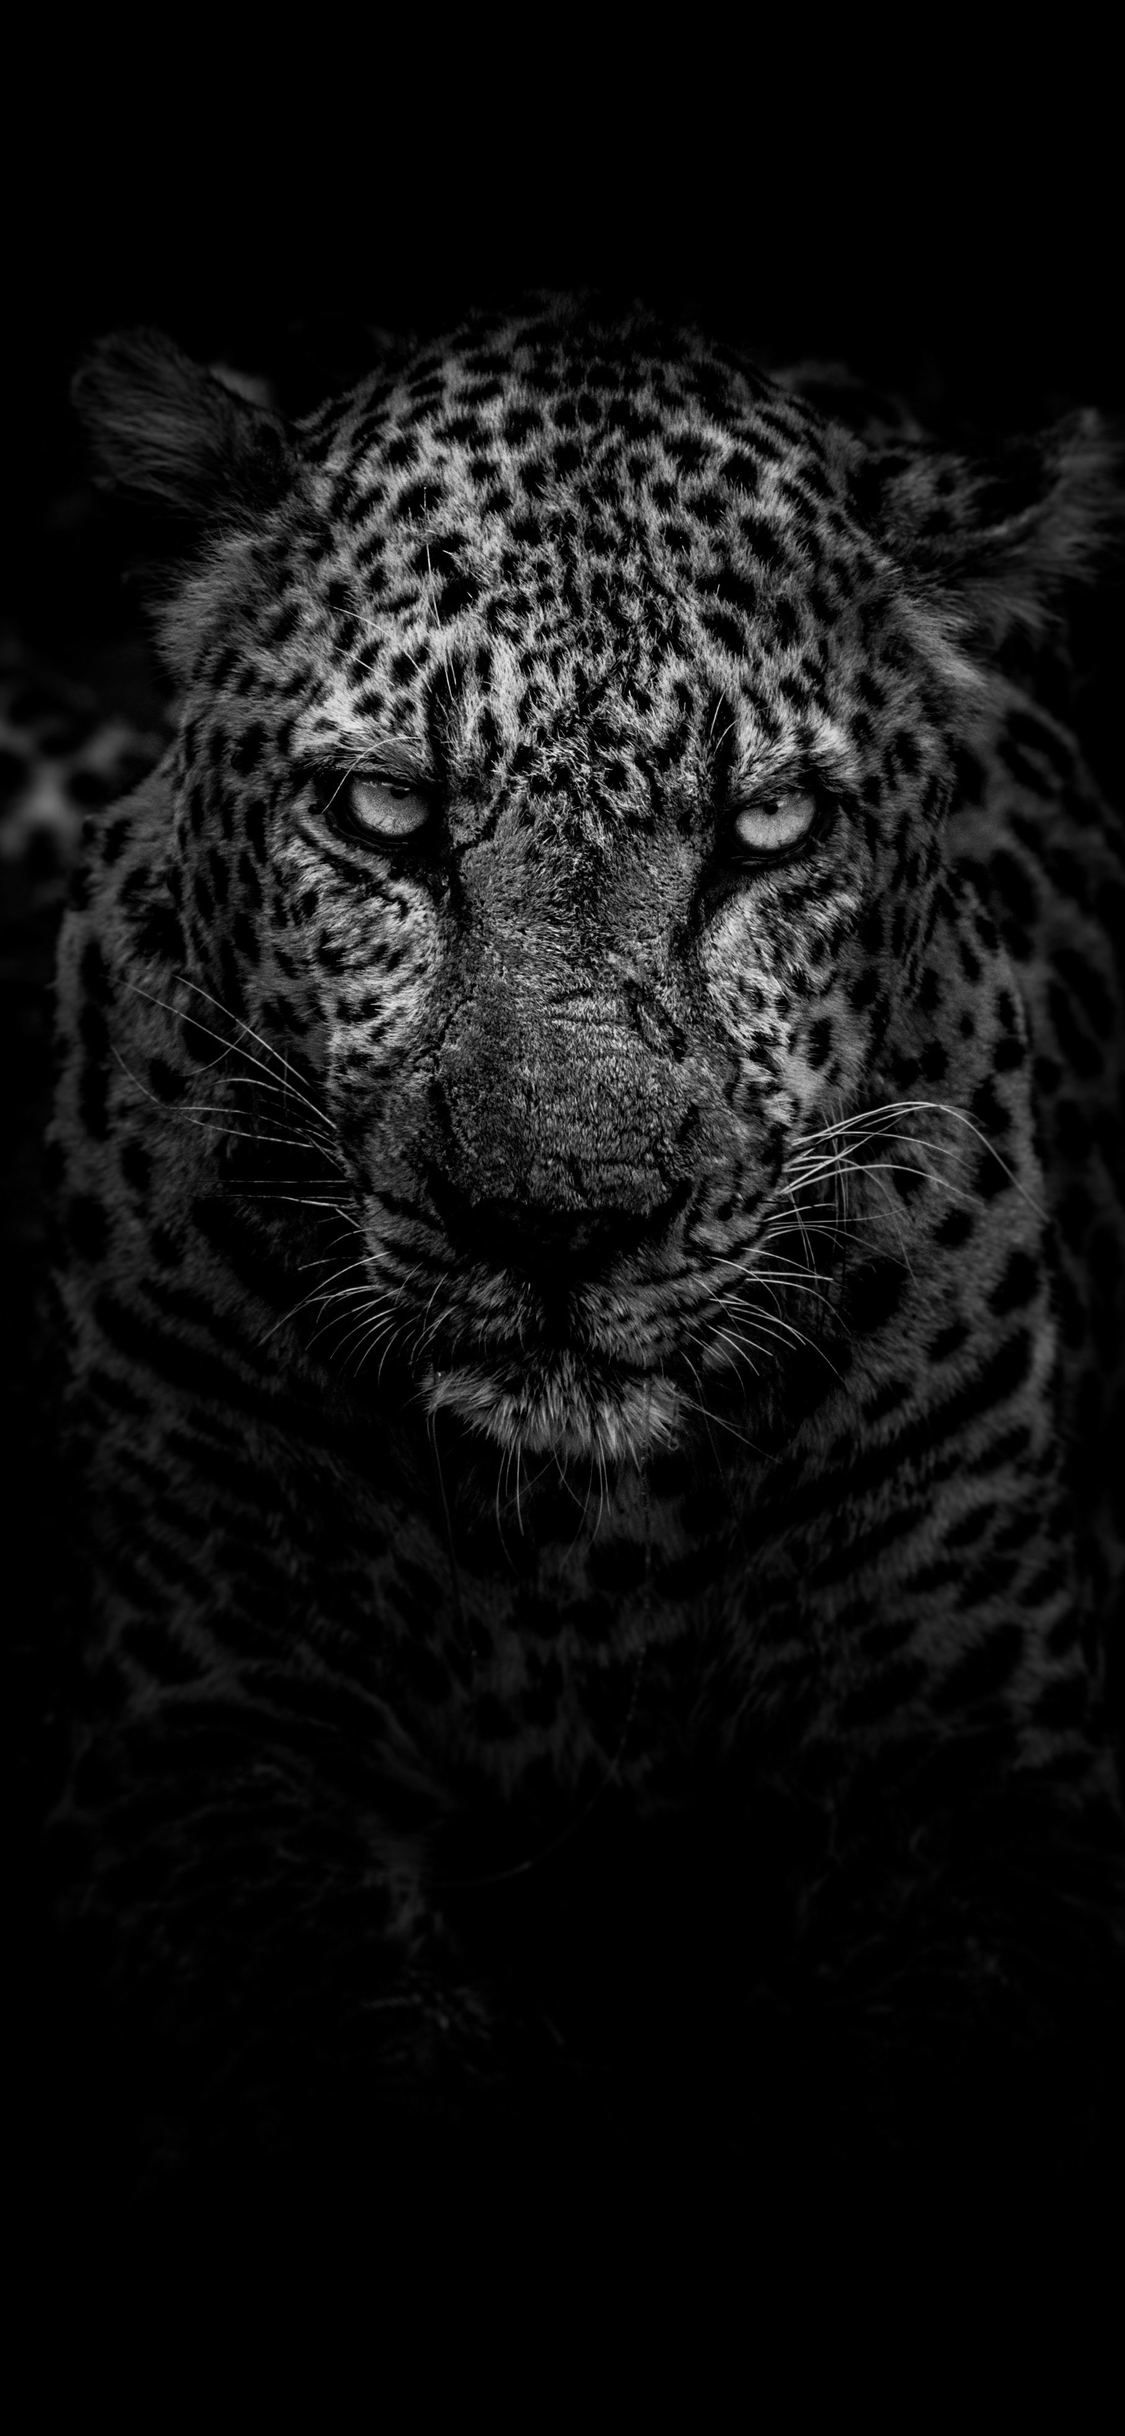 Leopard Dark Monochrome Iphone X Leopard Wallpaper Animal